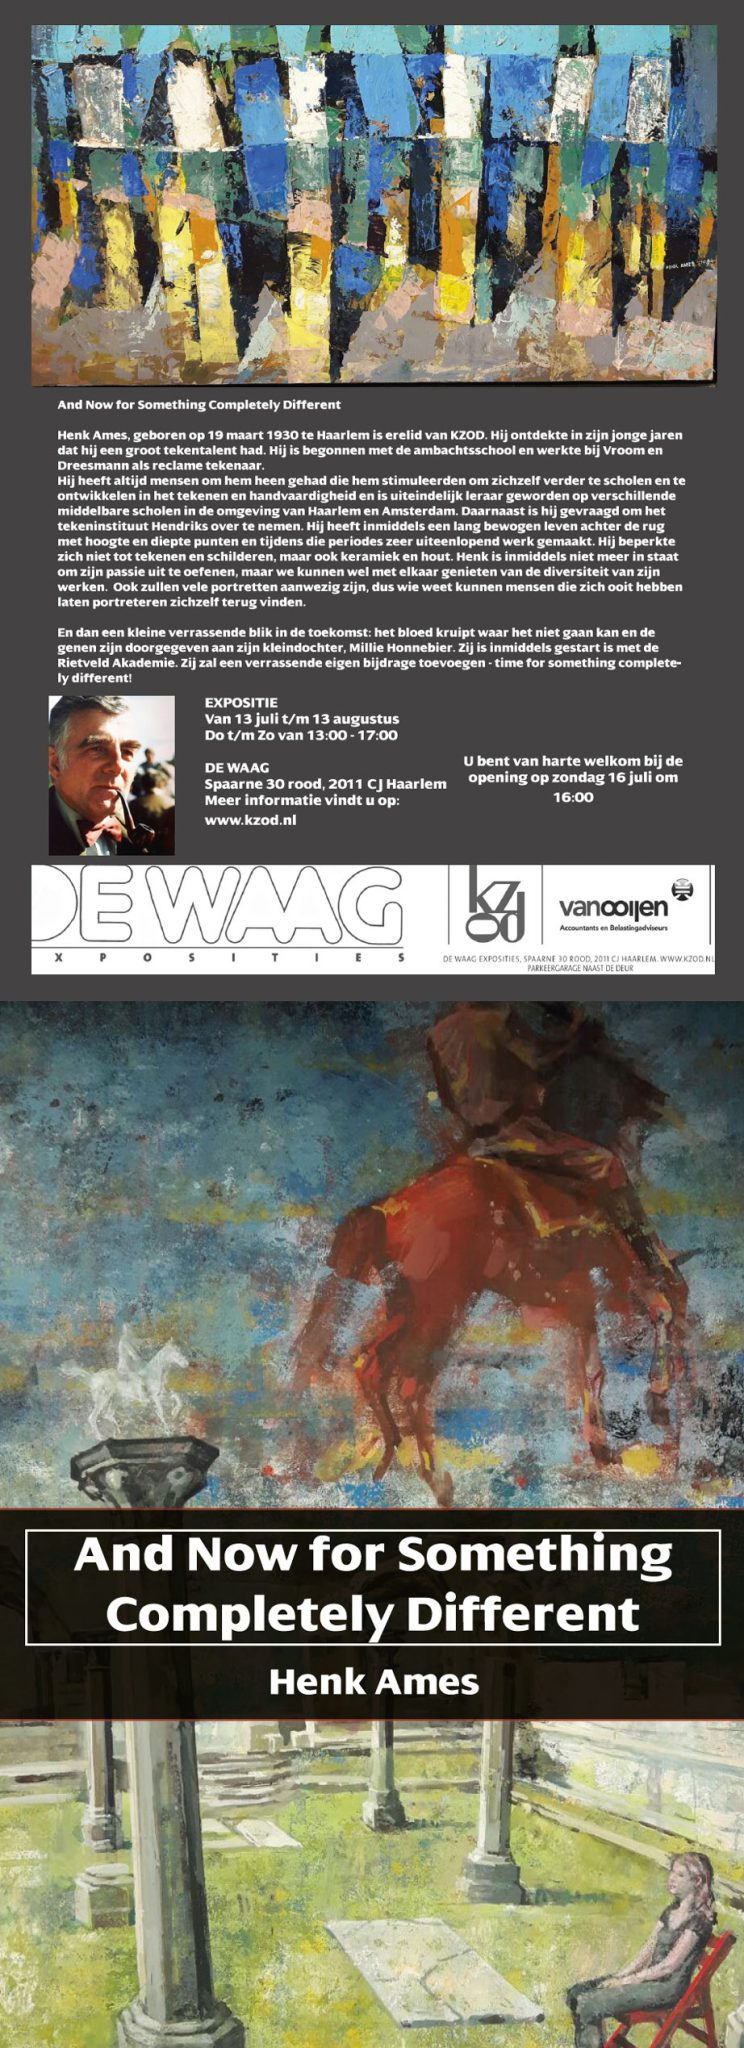 Expositie de Waag | Henk Ames | And Now for Something Completely Different